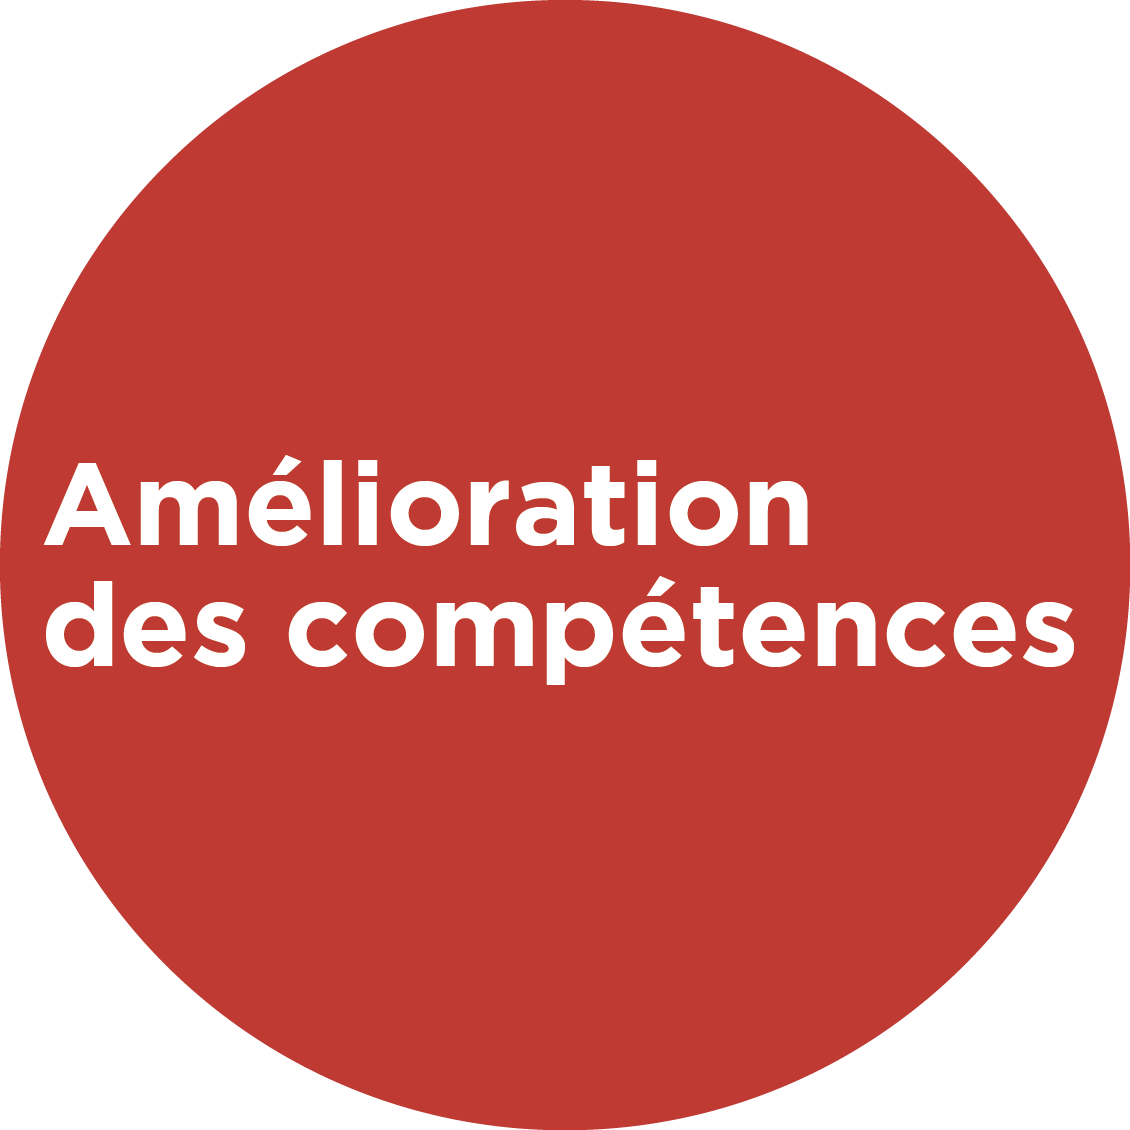 BoiteaOutil_Icone_Amedescompetences